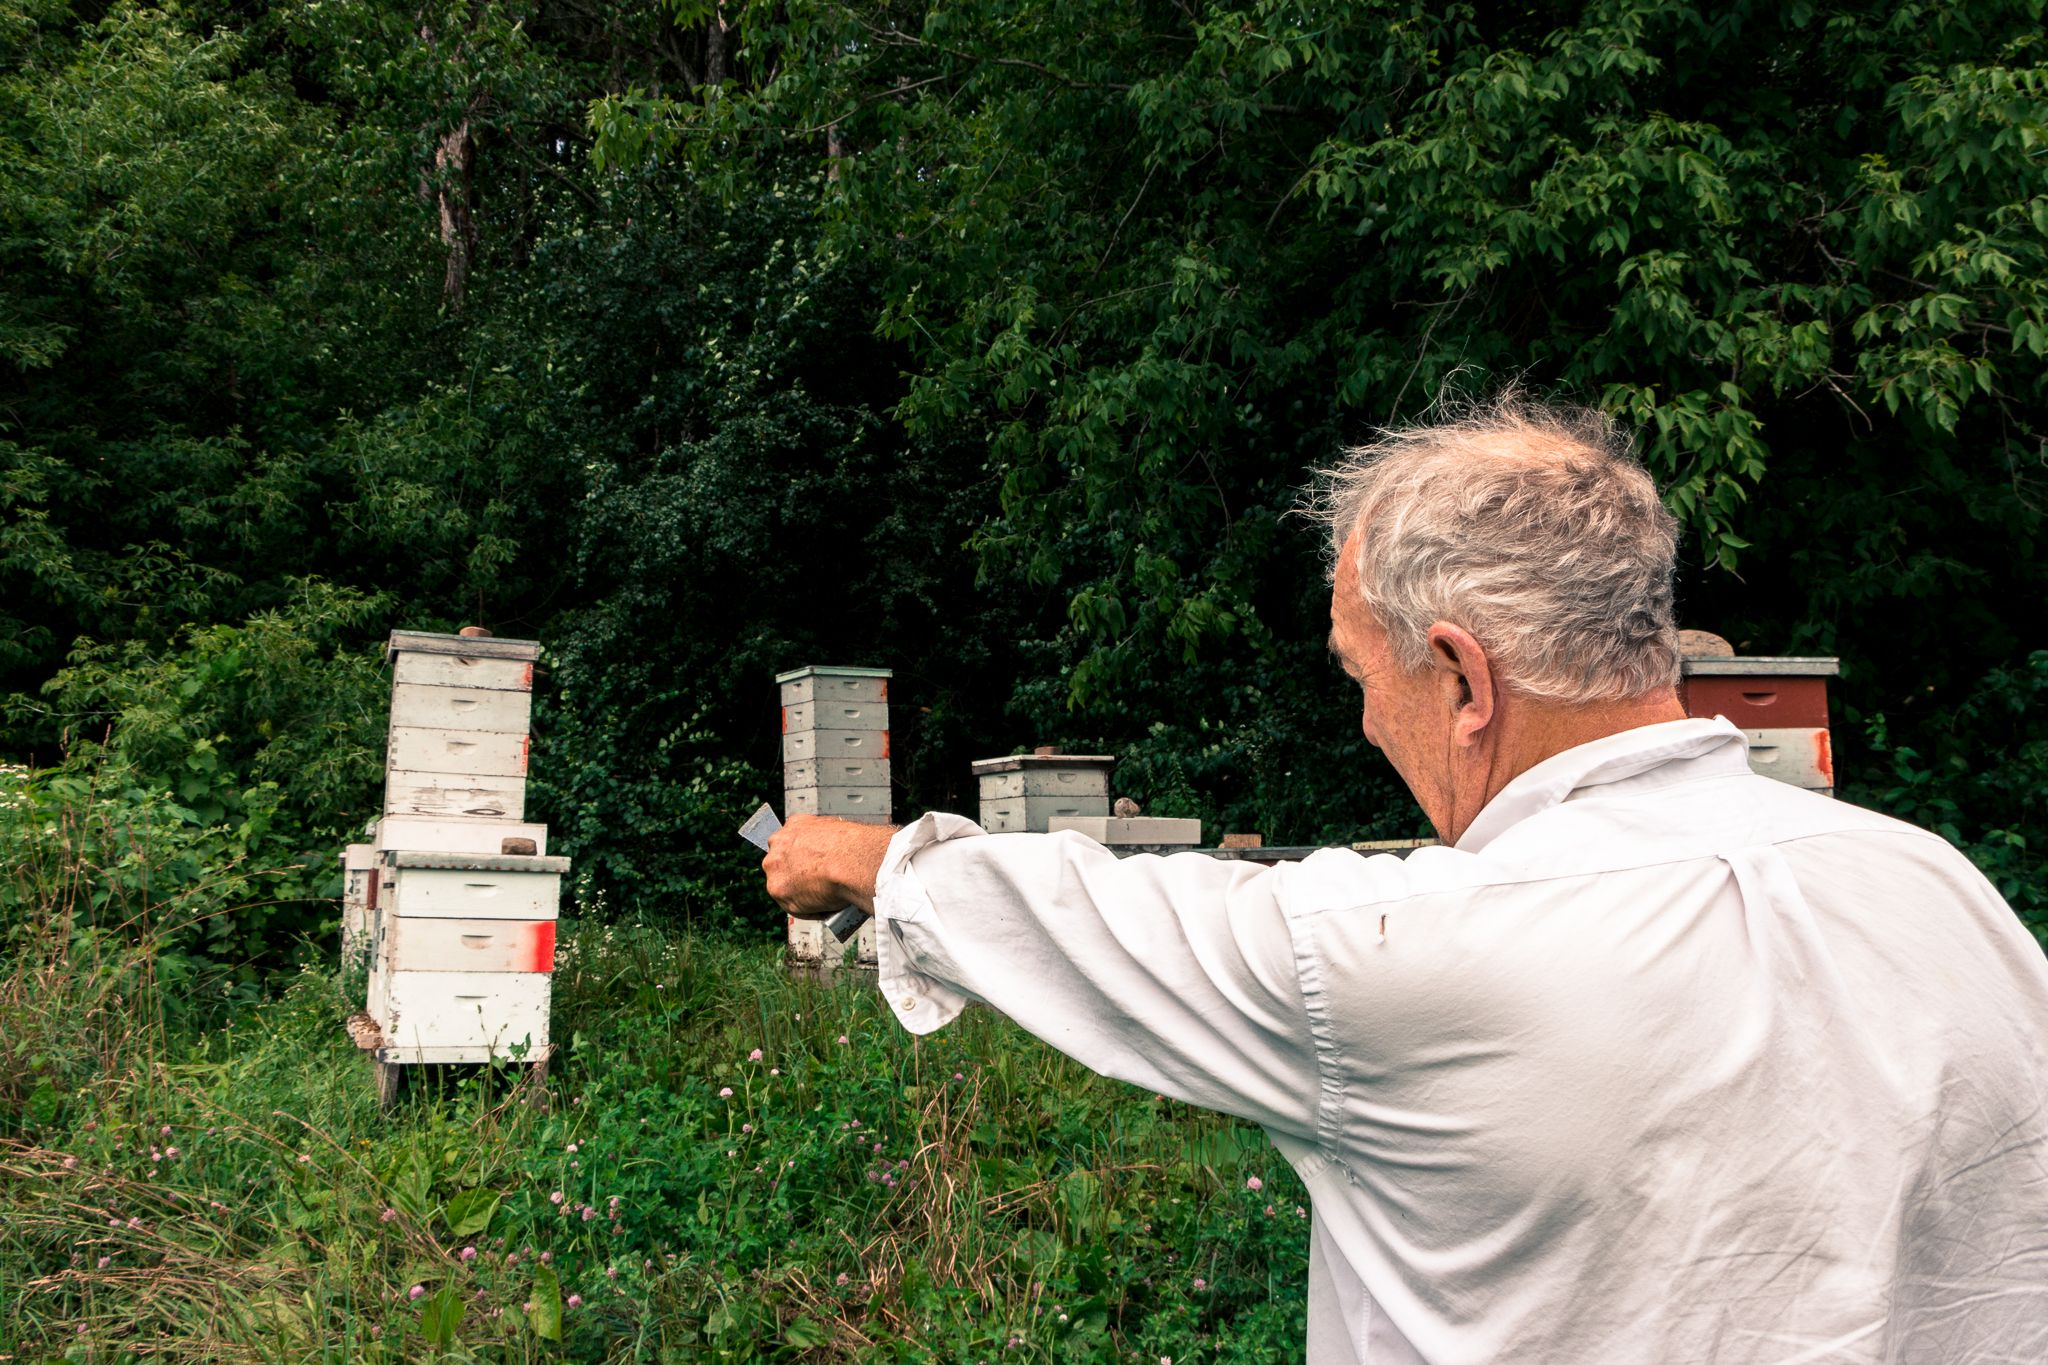 Southeastern Wisconsin beekeeping and honey. Local, organic apiaries and beekeeping. Maker of honey and related products. Serving WI and northern IL.